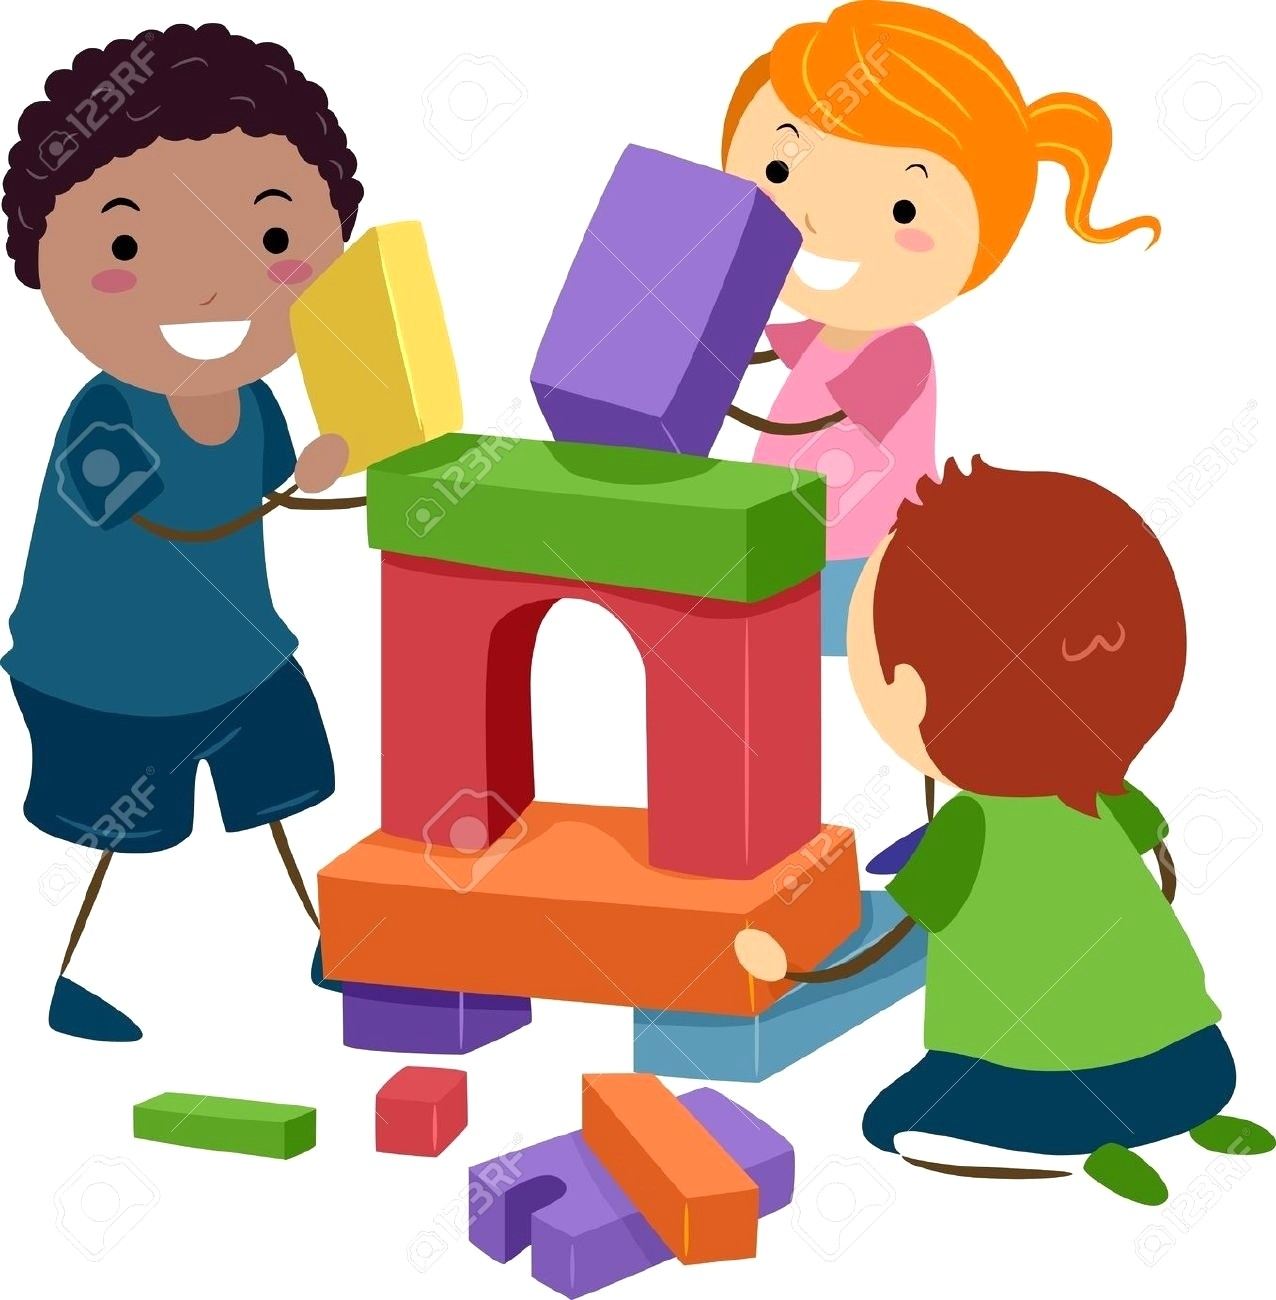 Kids playing with toys clipart 4 » Clipart Station.